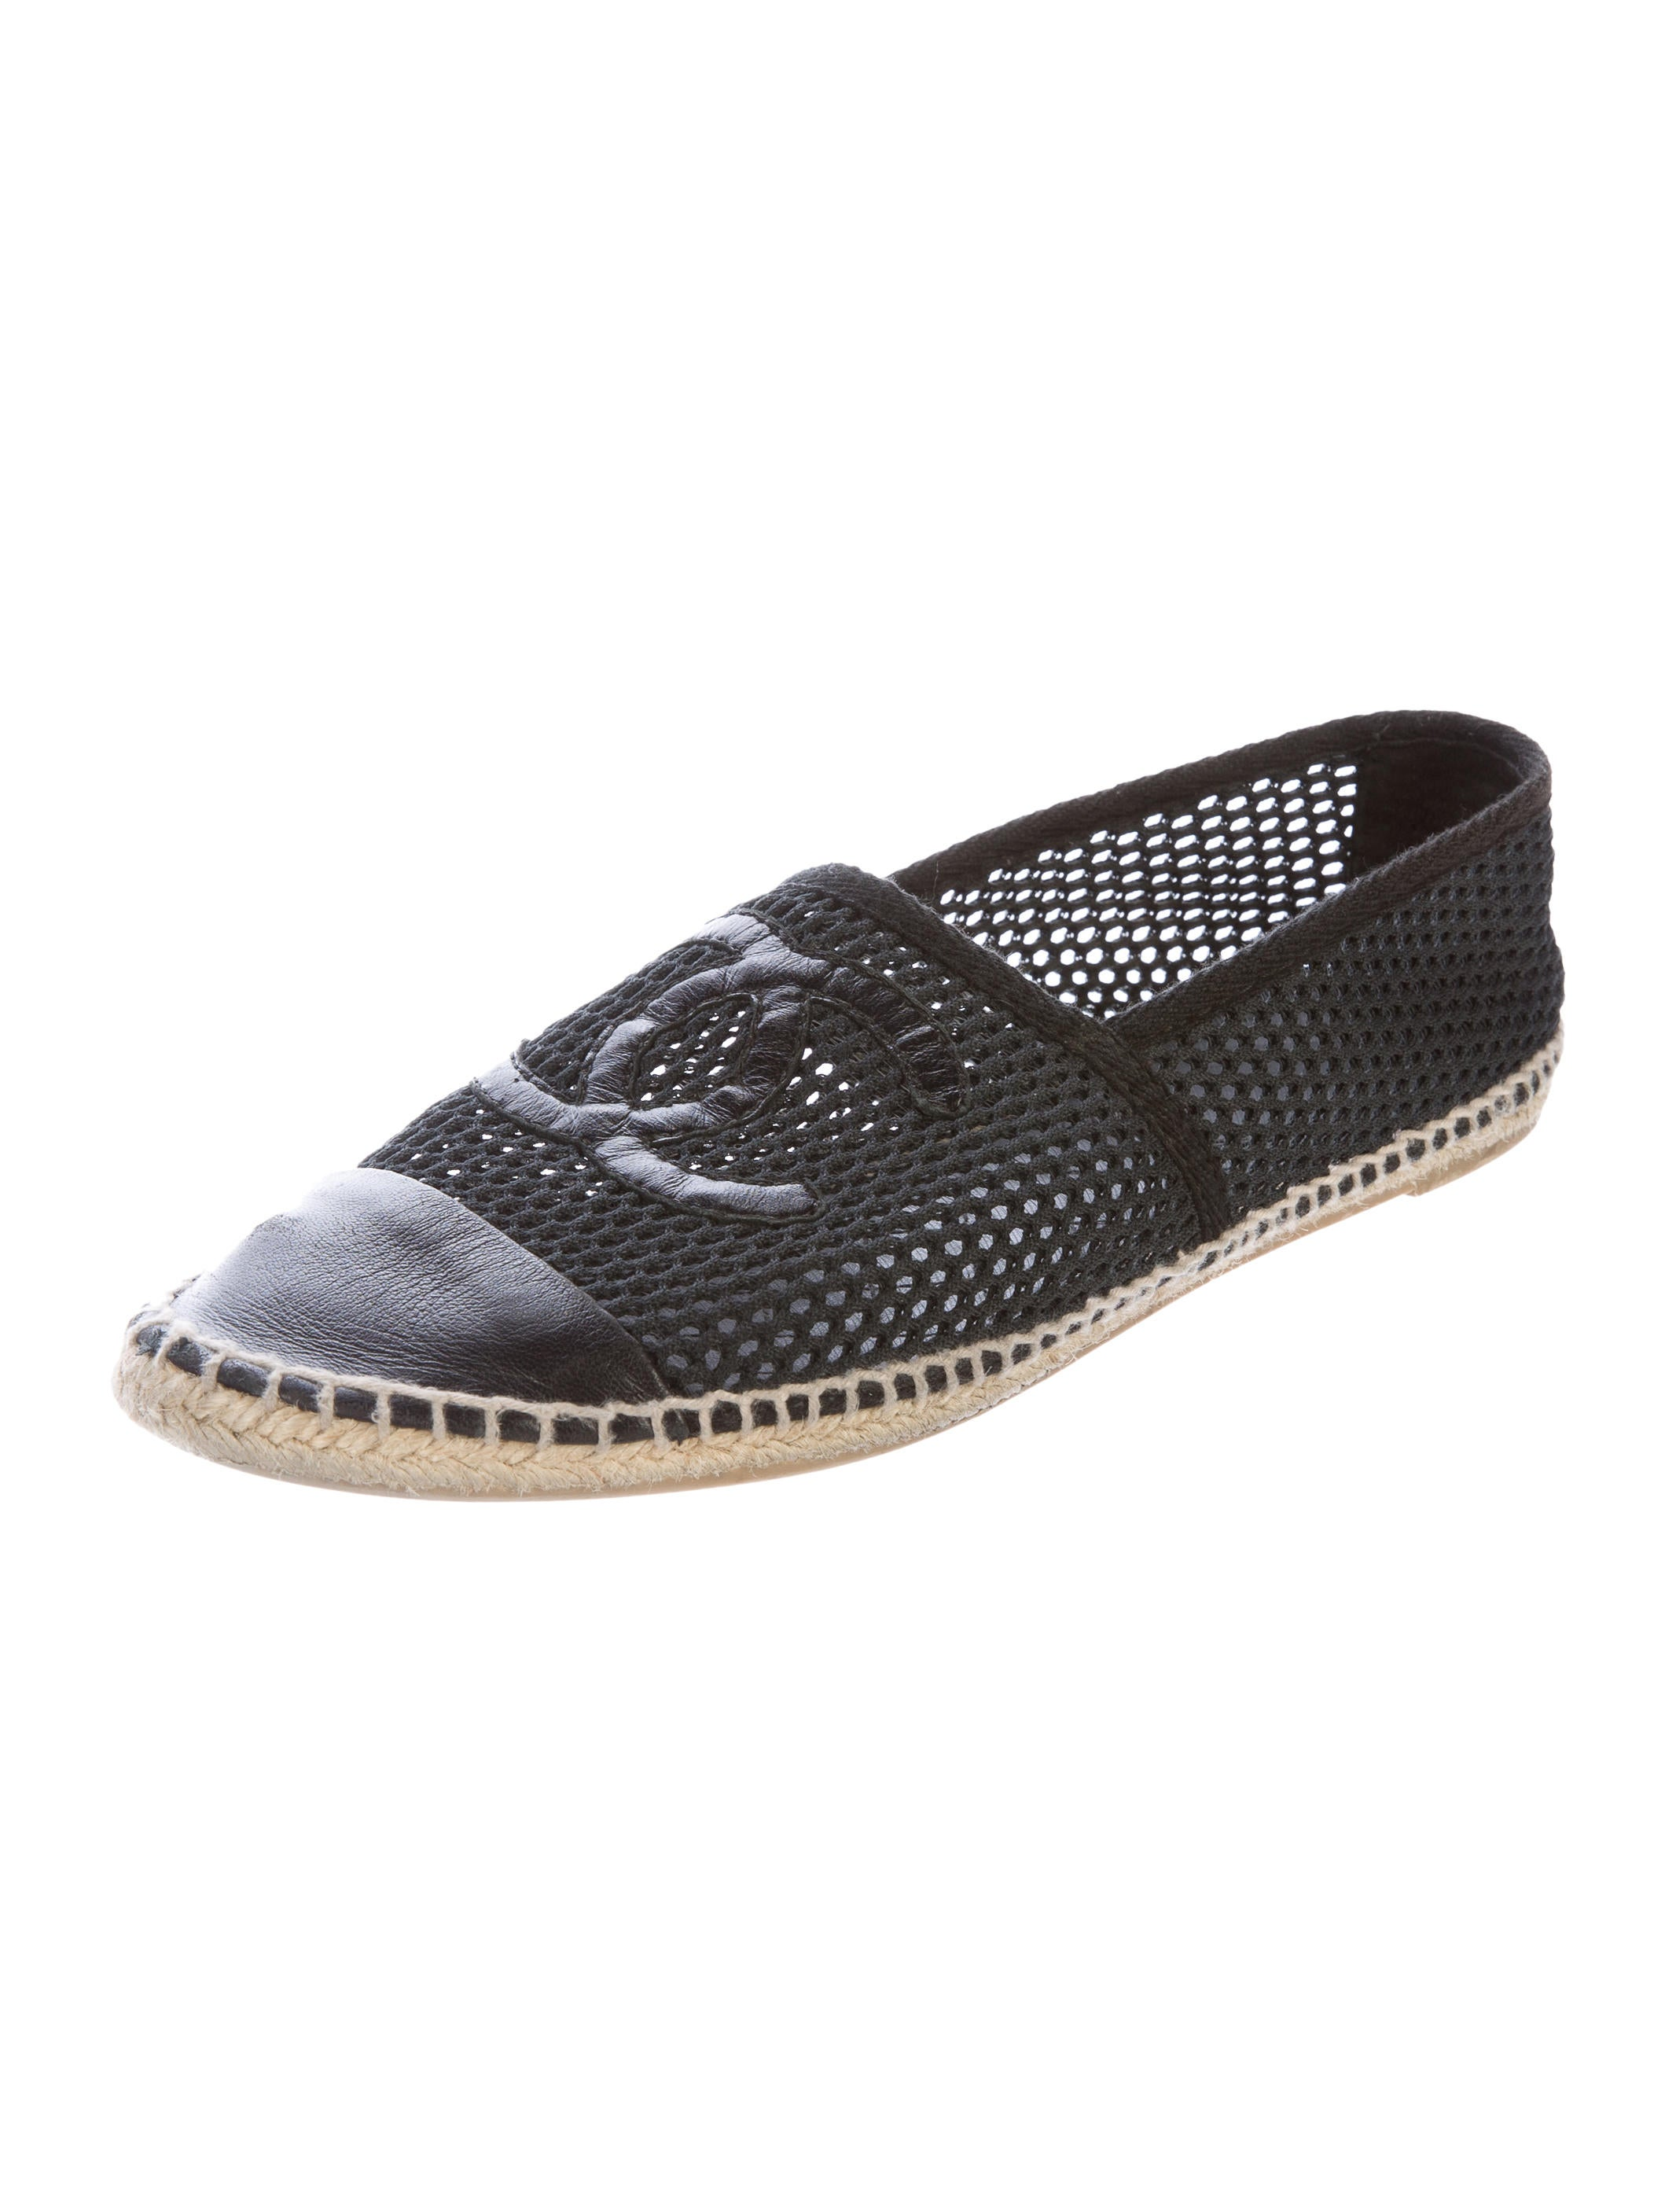 Chanel Mesh Espadrille Flats Shoes Cha161589 The